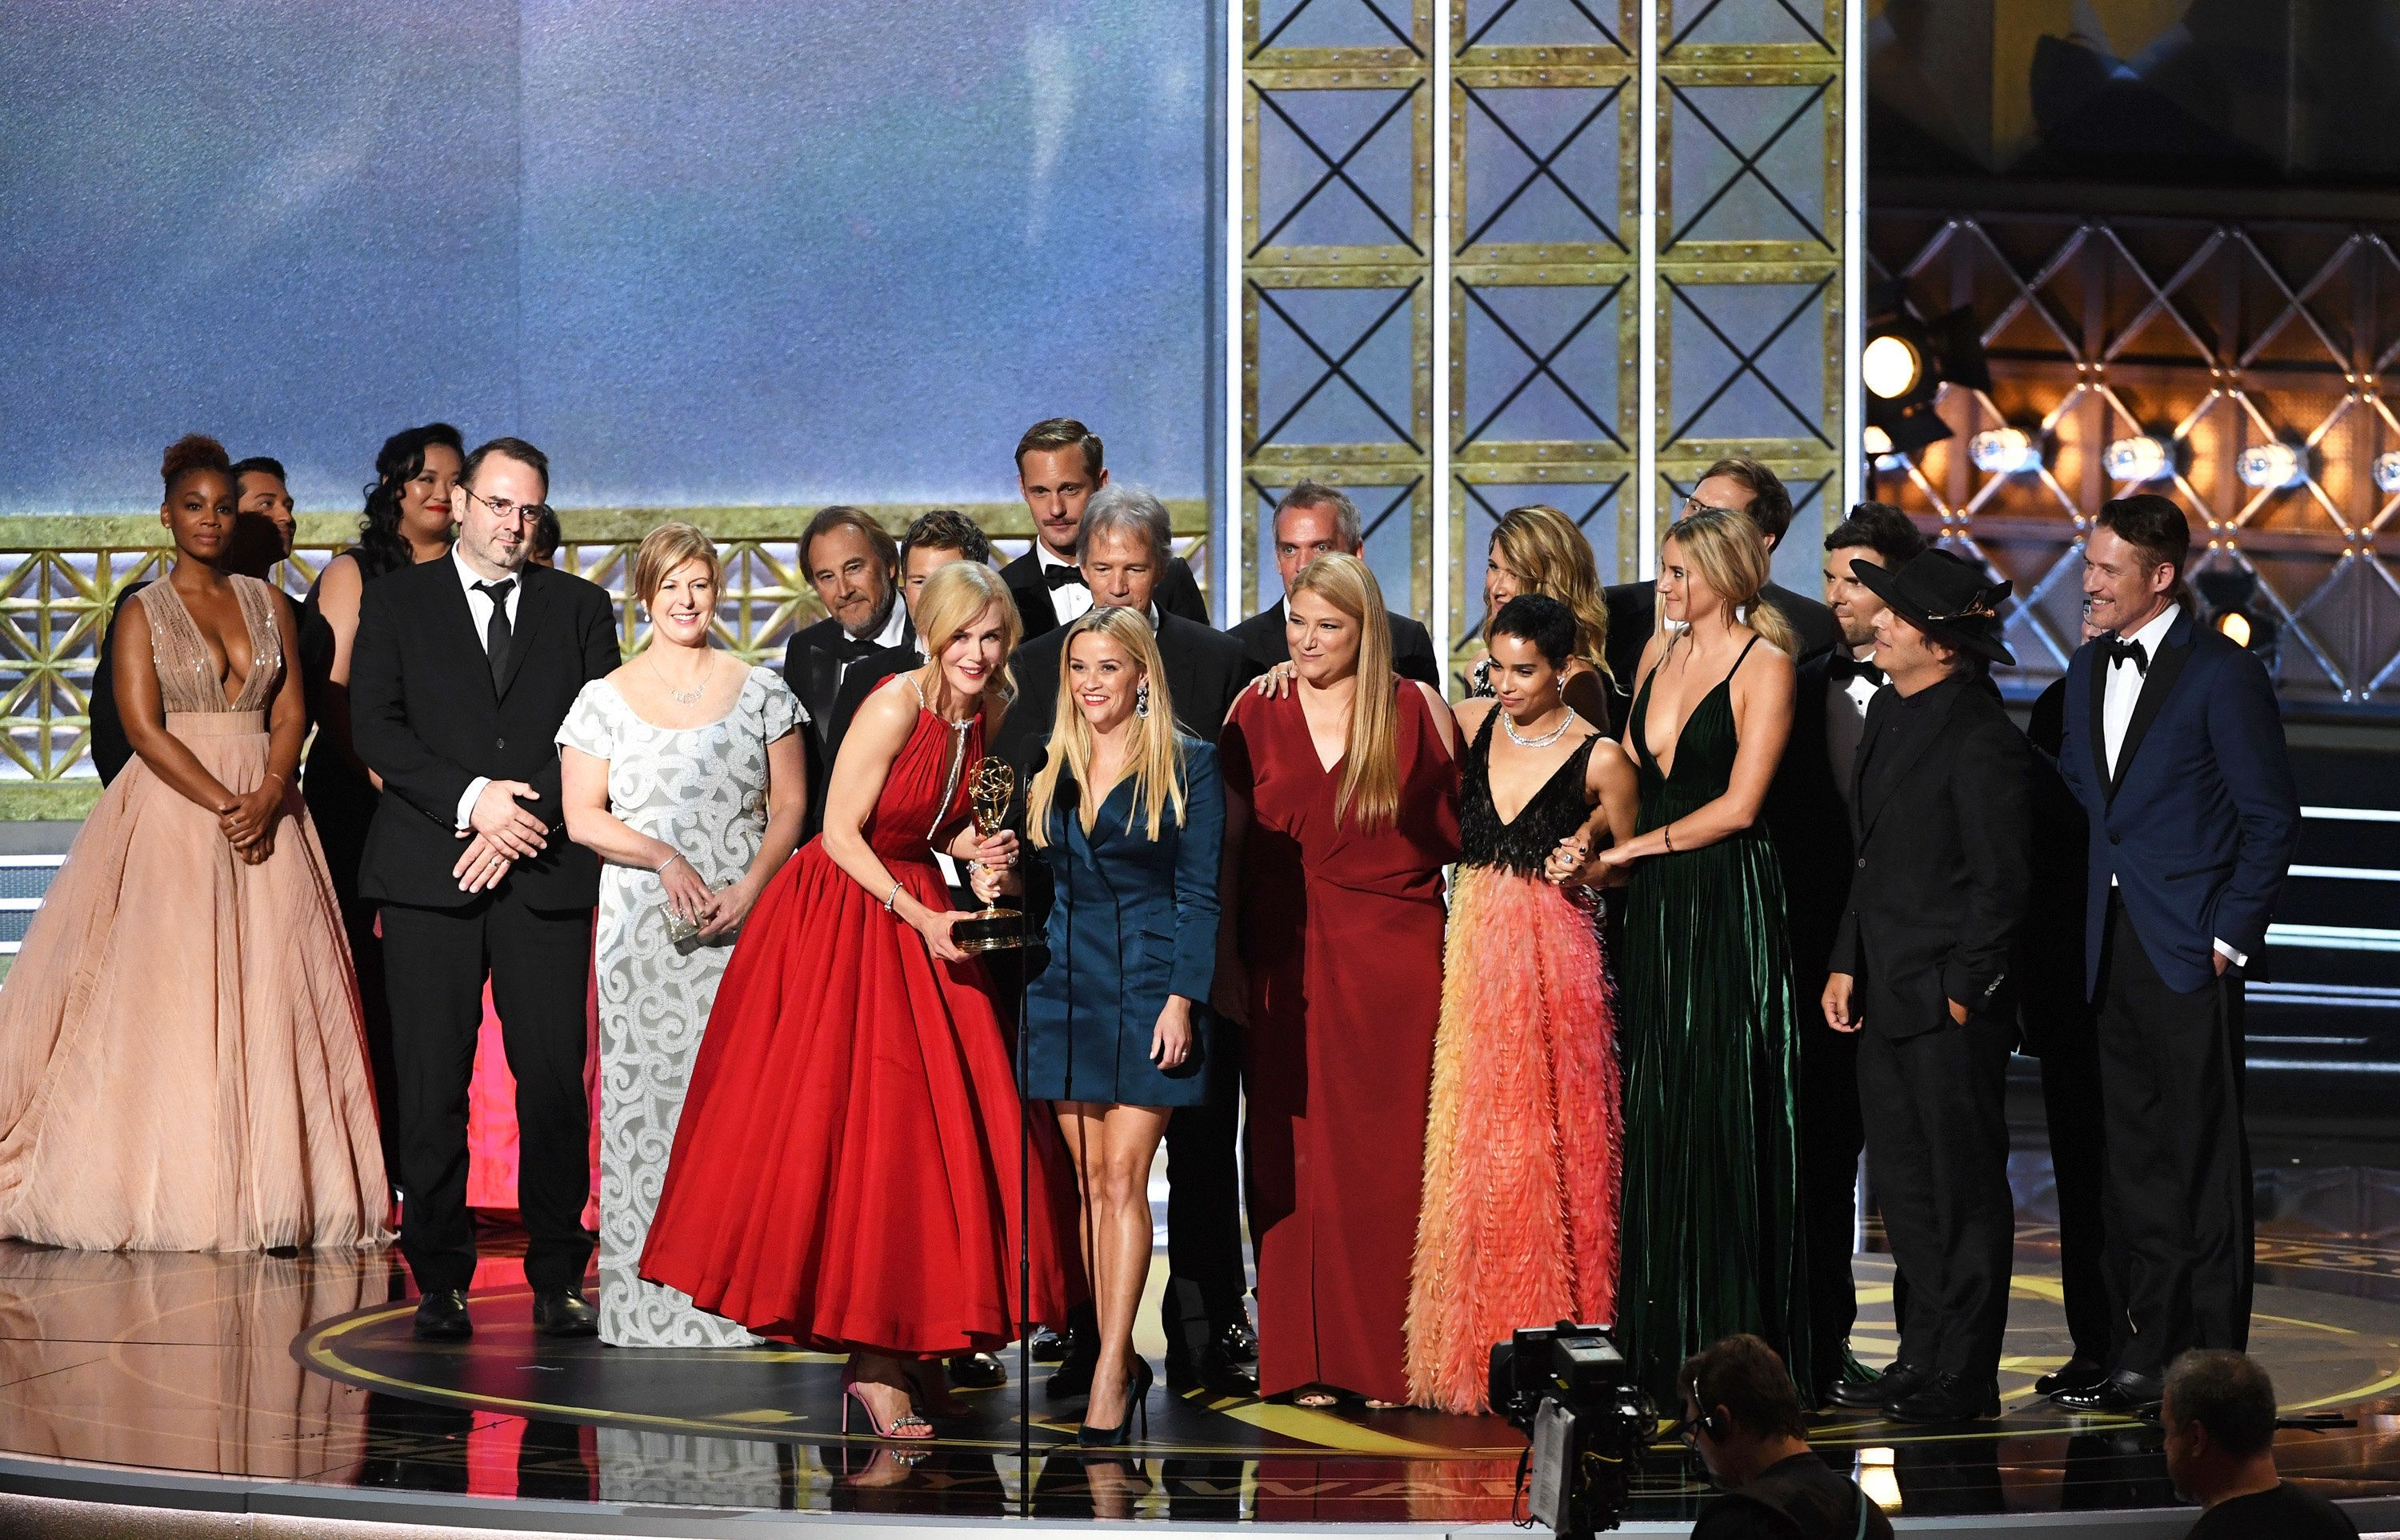 LOS ANGELES, CA - SEPTEMBER 17:  Actors Nicole Kidman and Reese Witherspoon (both at microphone) with cast and crew of 'Big Little Lies' accept the Outstanding Limited Series award onstage during the 69th Annual Primetime Emmy Awards at Microsoft Theater on September 17, 2017 in Los Angeles, California.  (Photo by Kevin Winter/Getty Images)